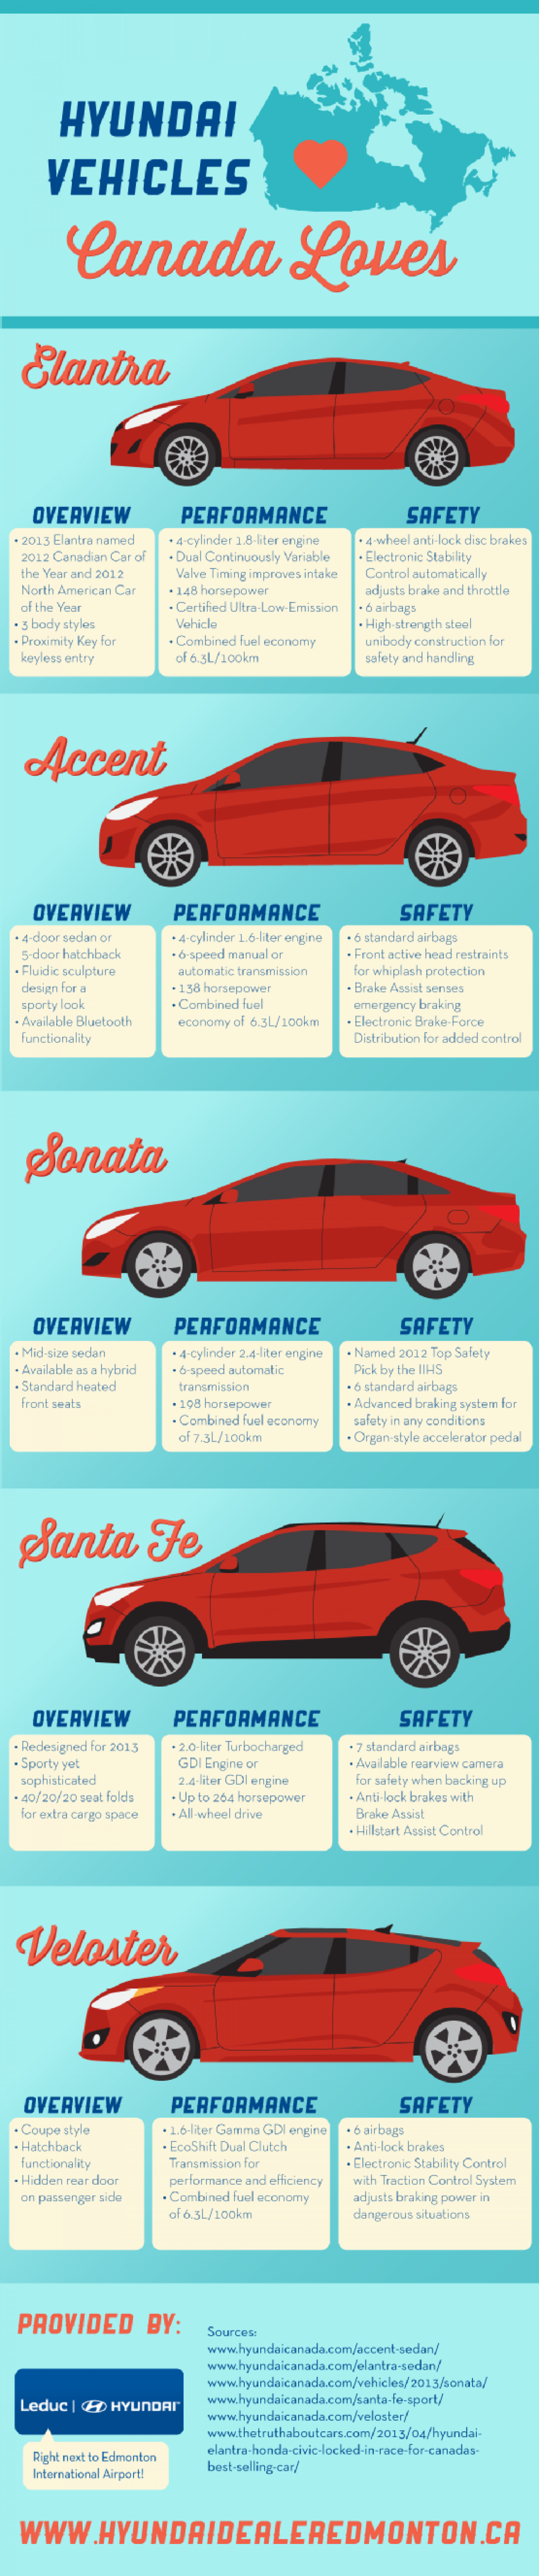 Hyundai Vehicles Canada Loves Infographic